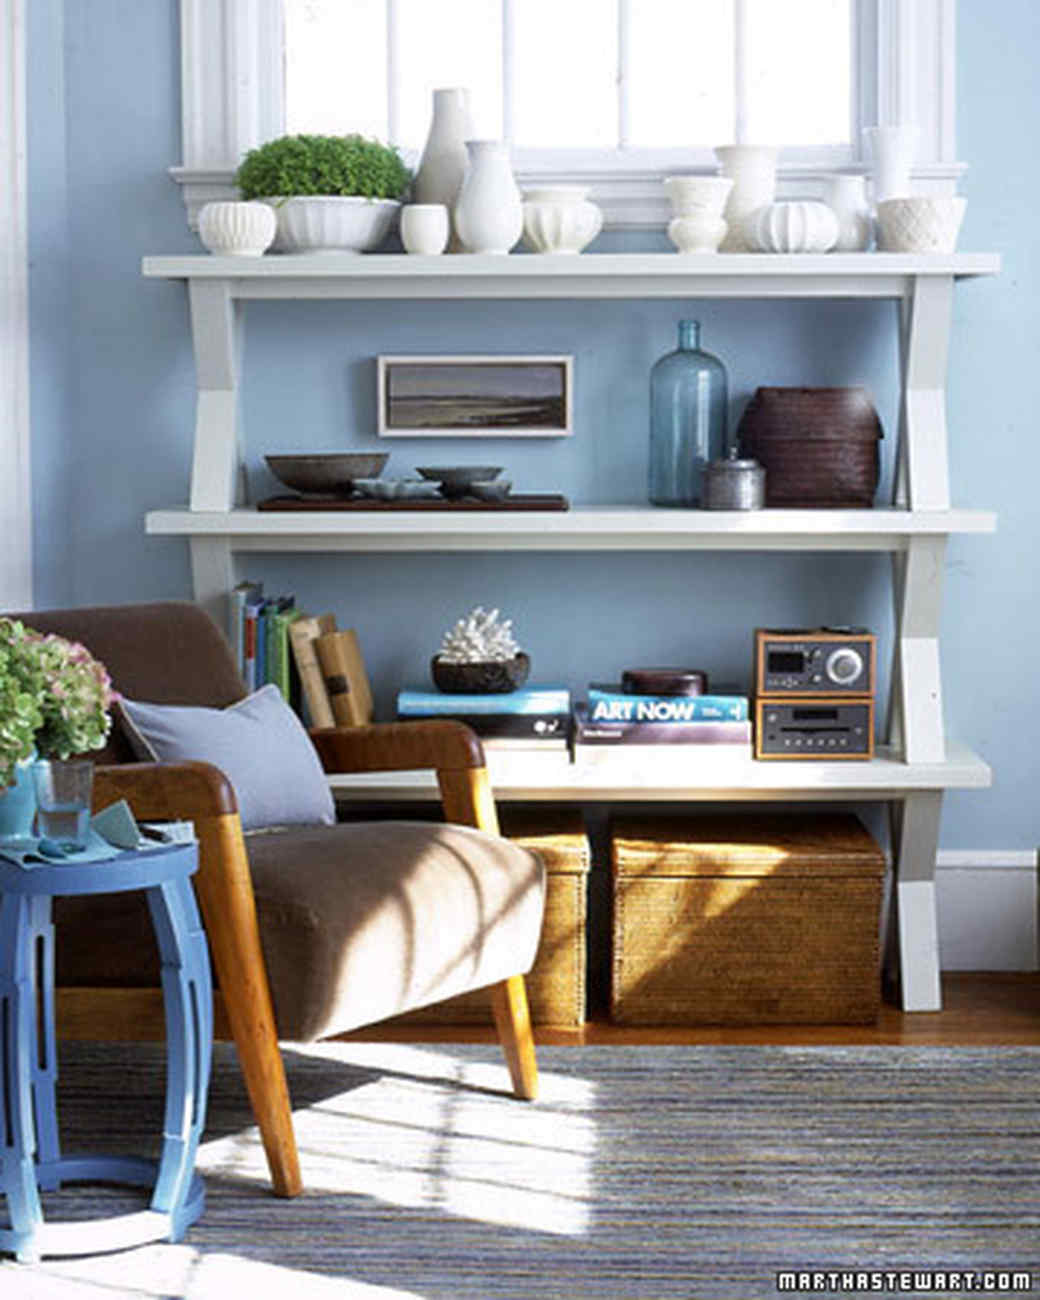 Banish Clutter: How To Organize Every Room In Your Home | Martha Stewart